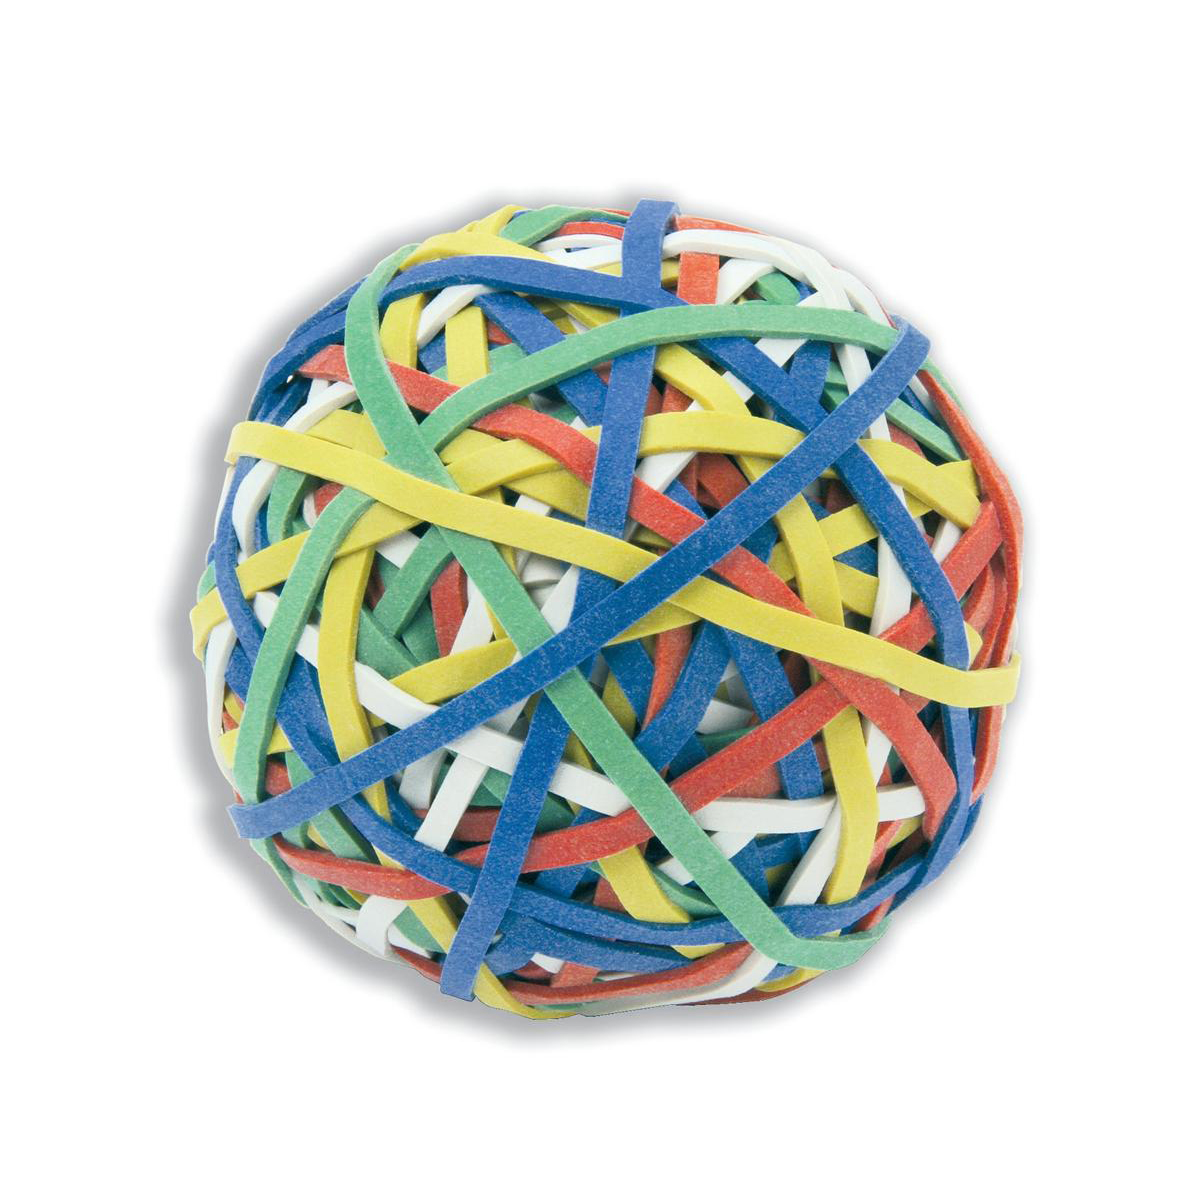 Rubber Bands 5 Star Office Rubber Band Ball of 200 Bands Assorted